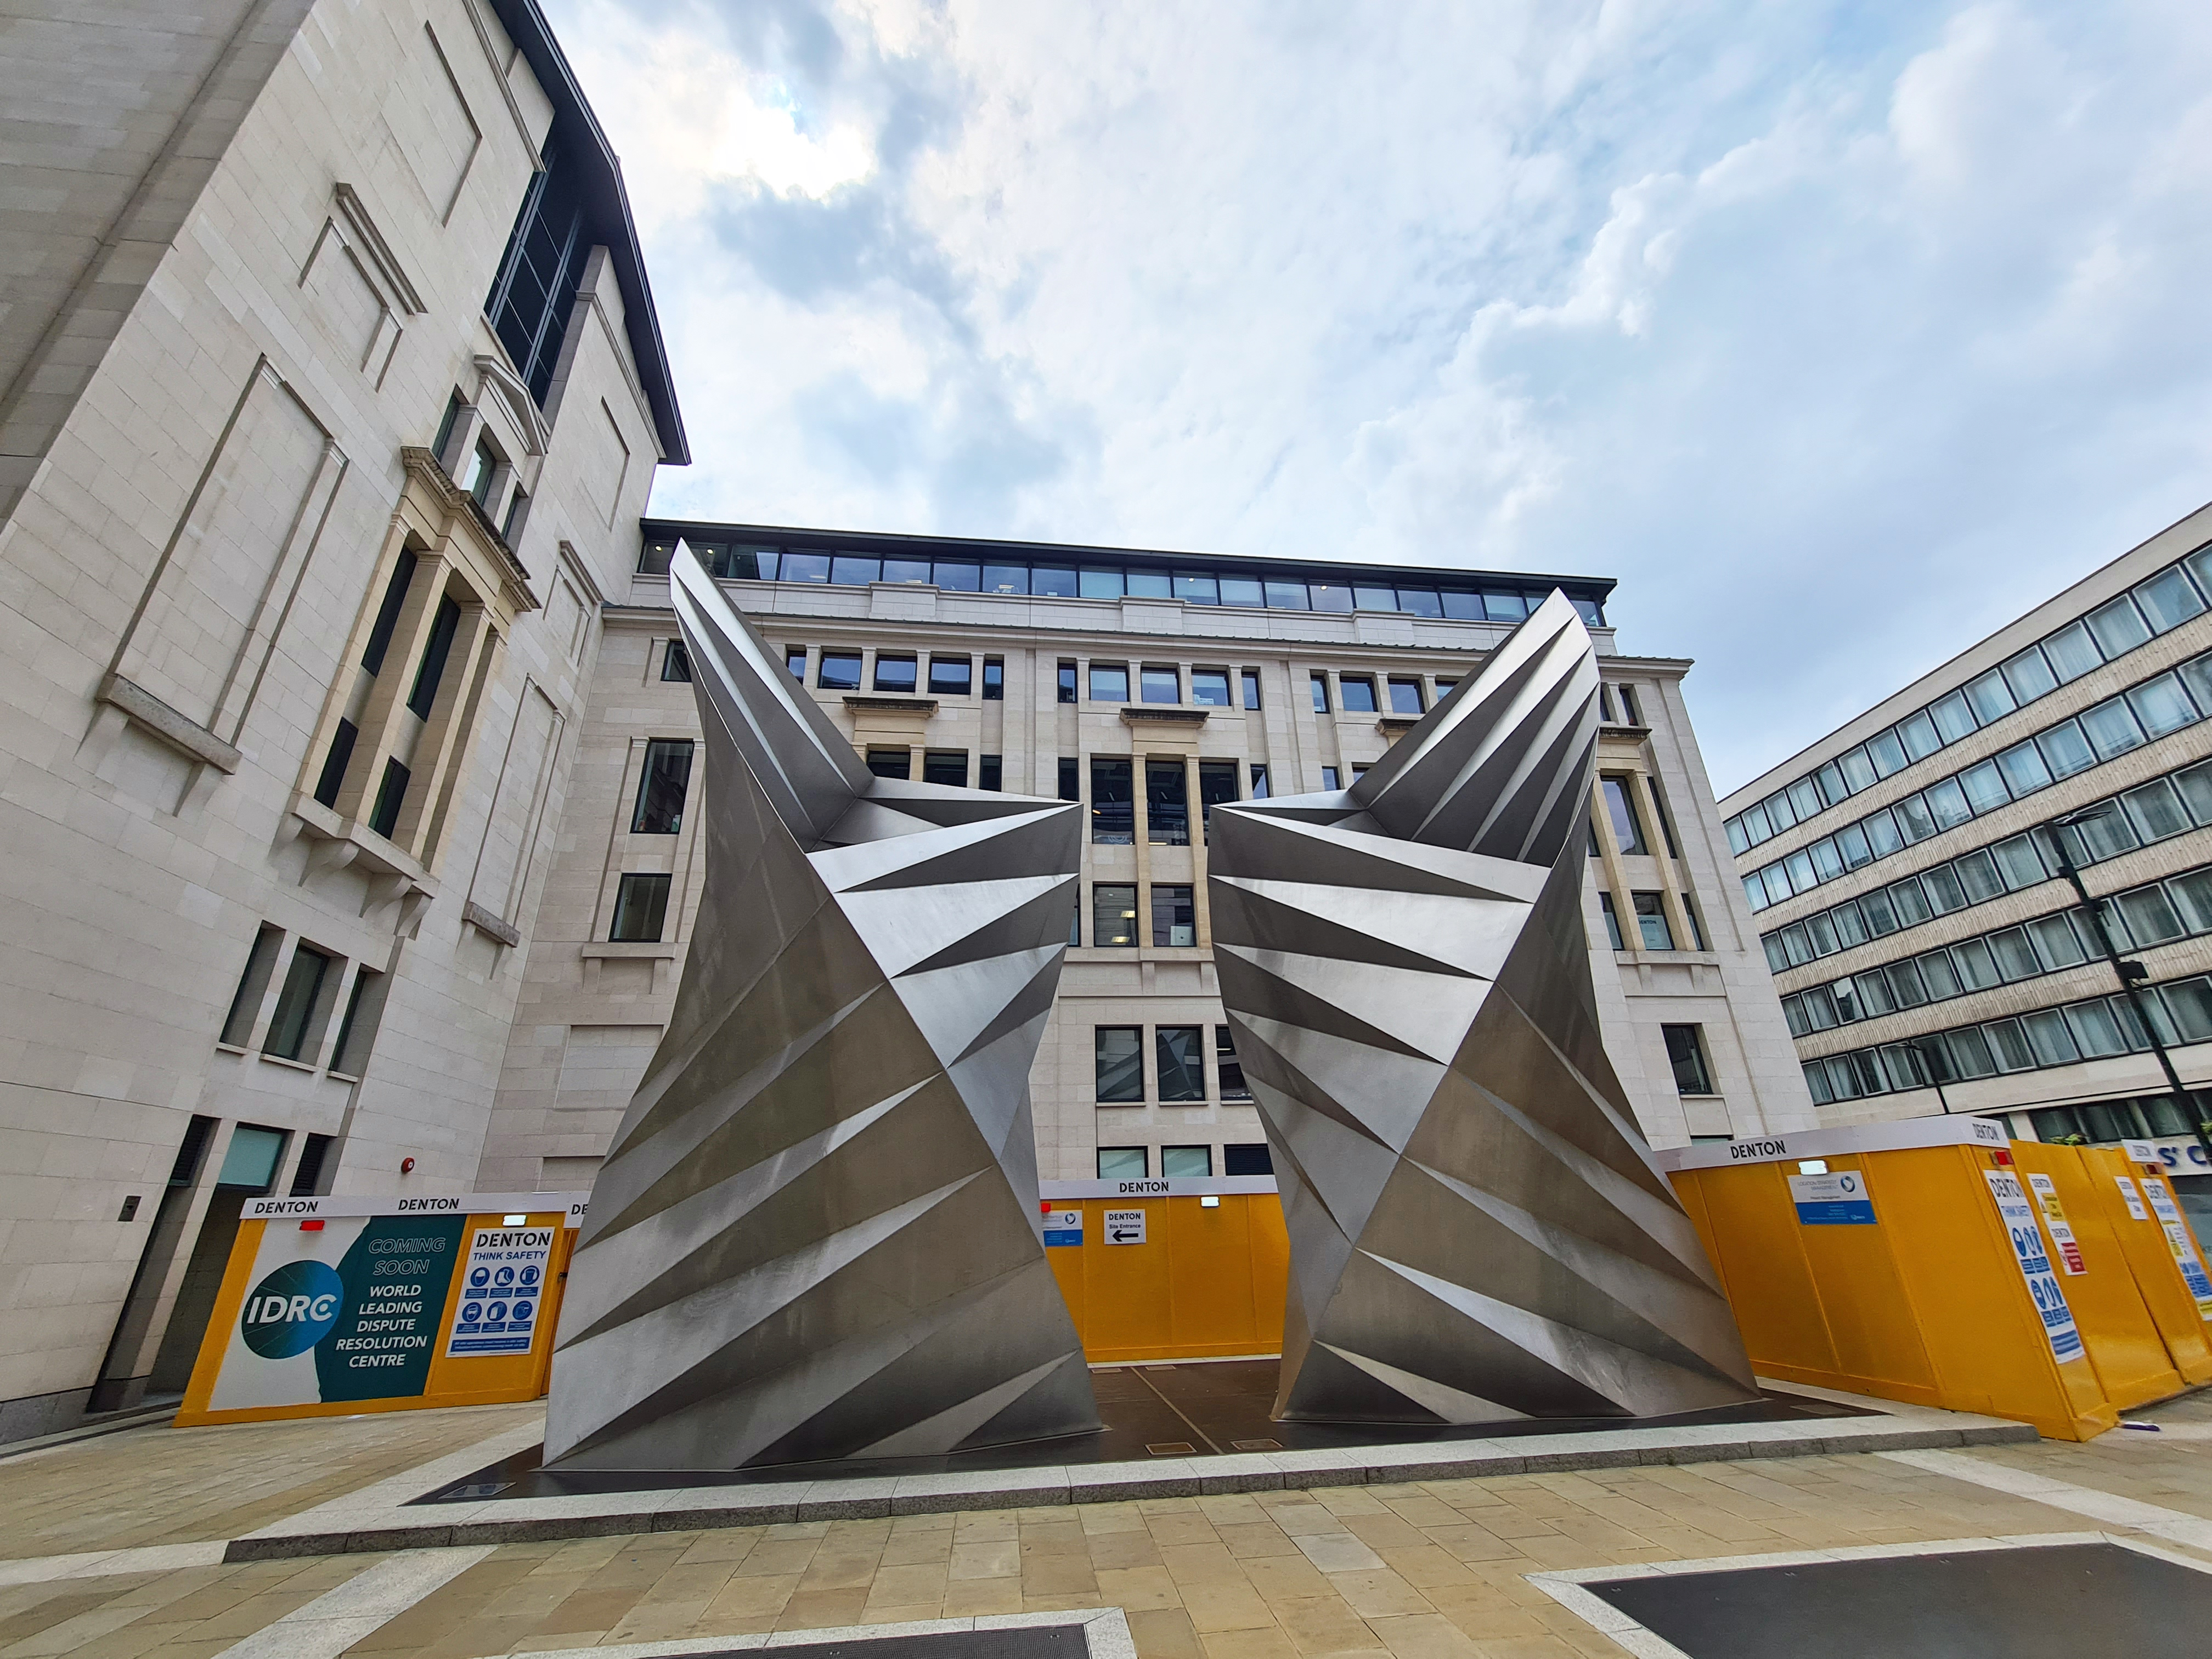 Angel's Wing, by Thomas Heatherwick. Paternoster Lane, off Square